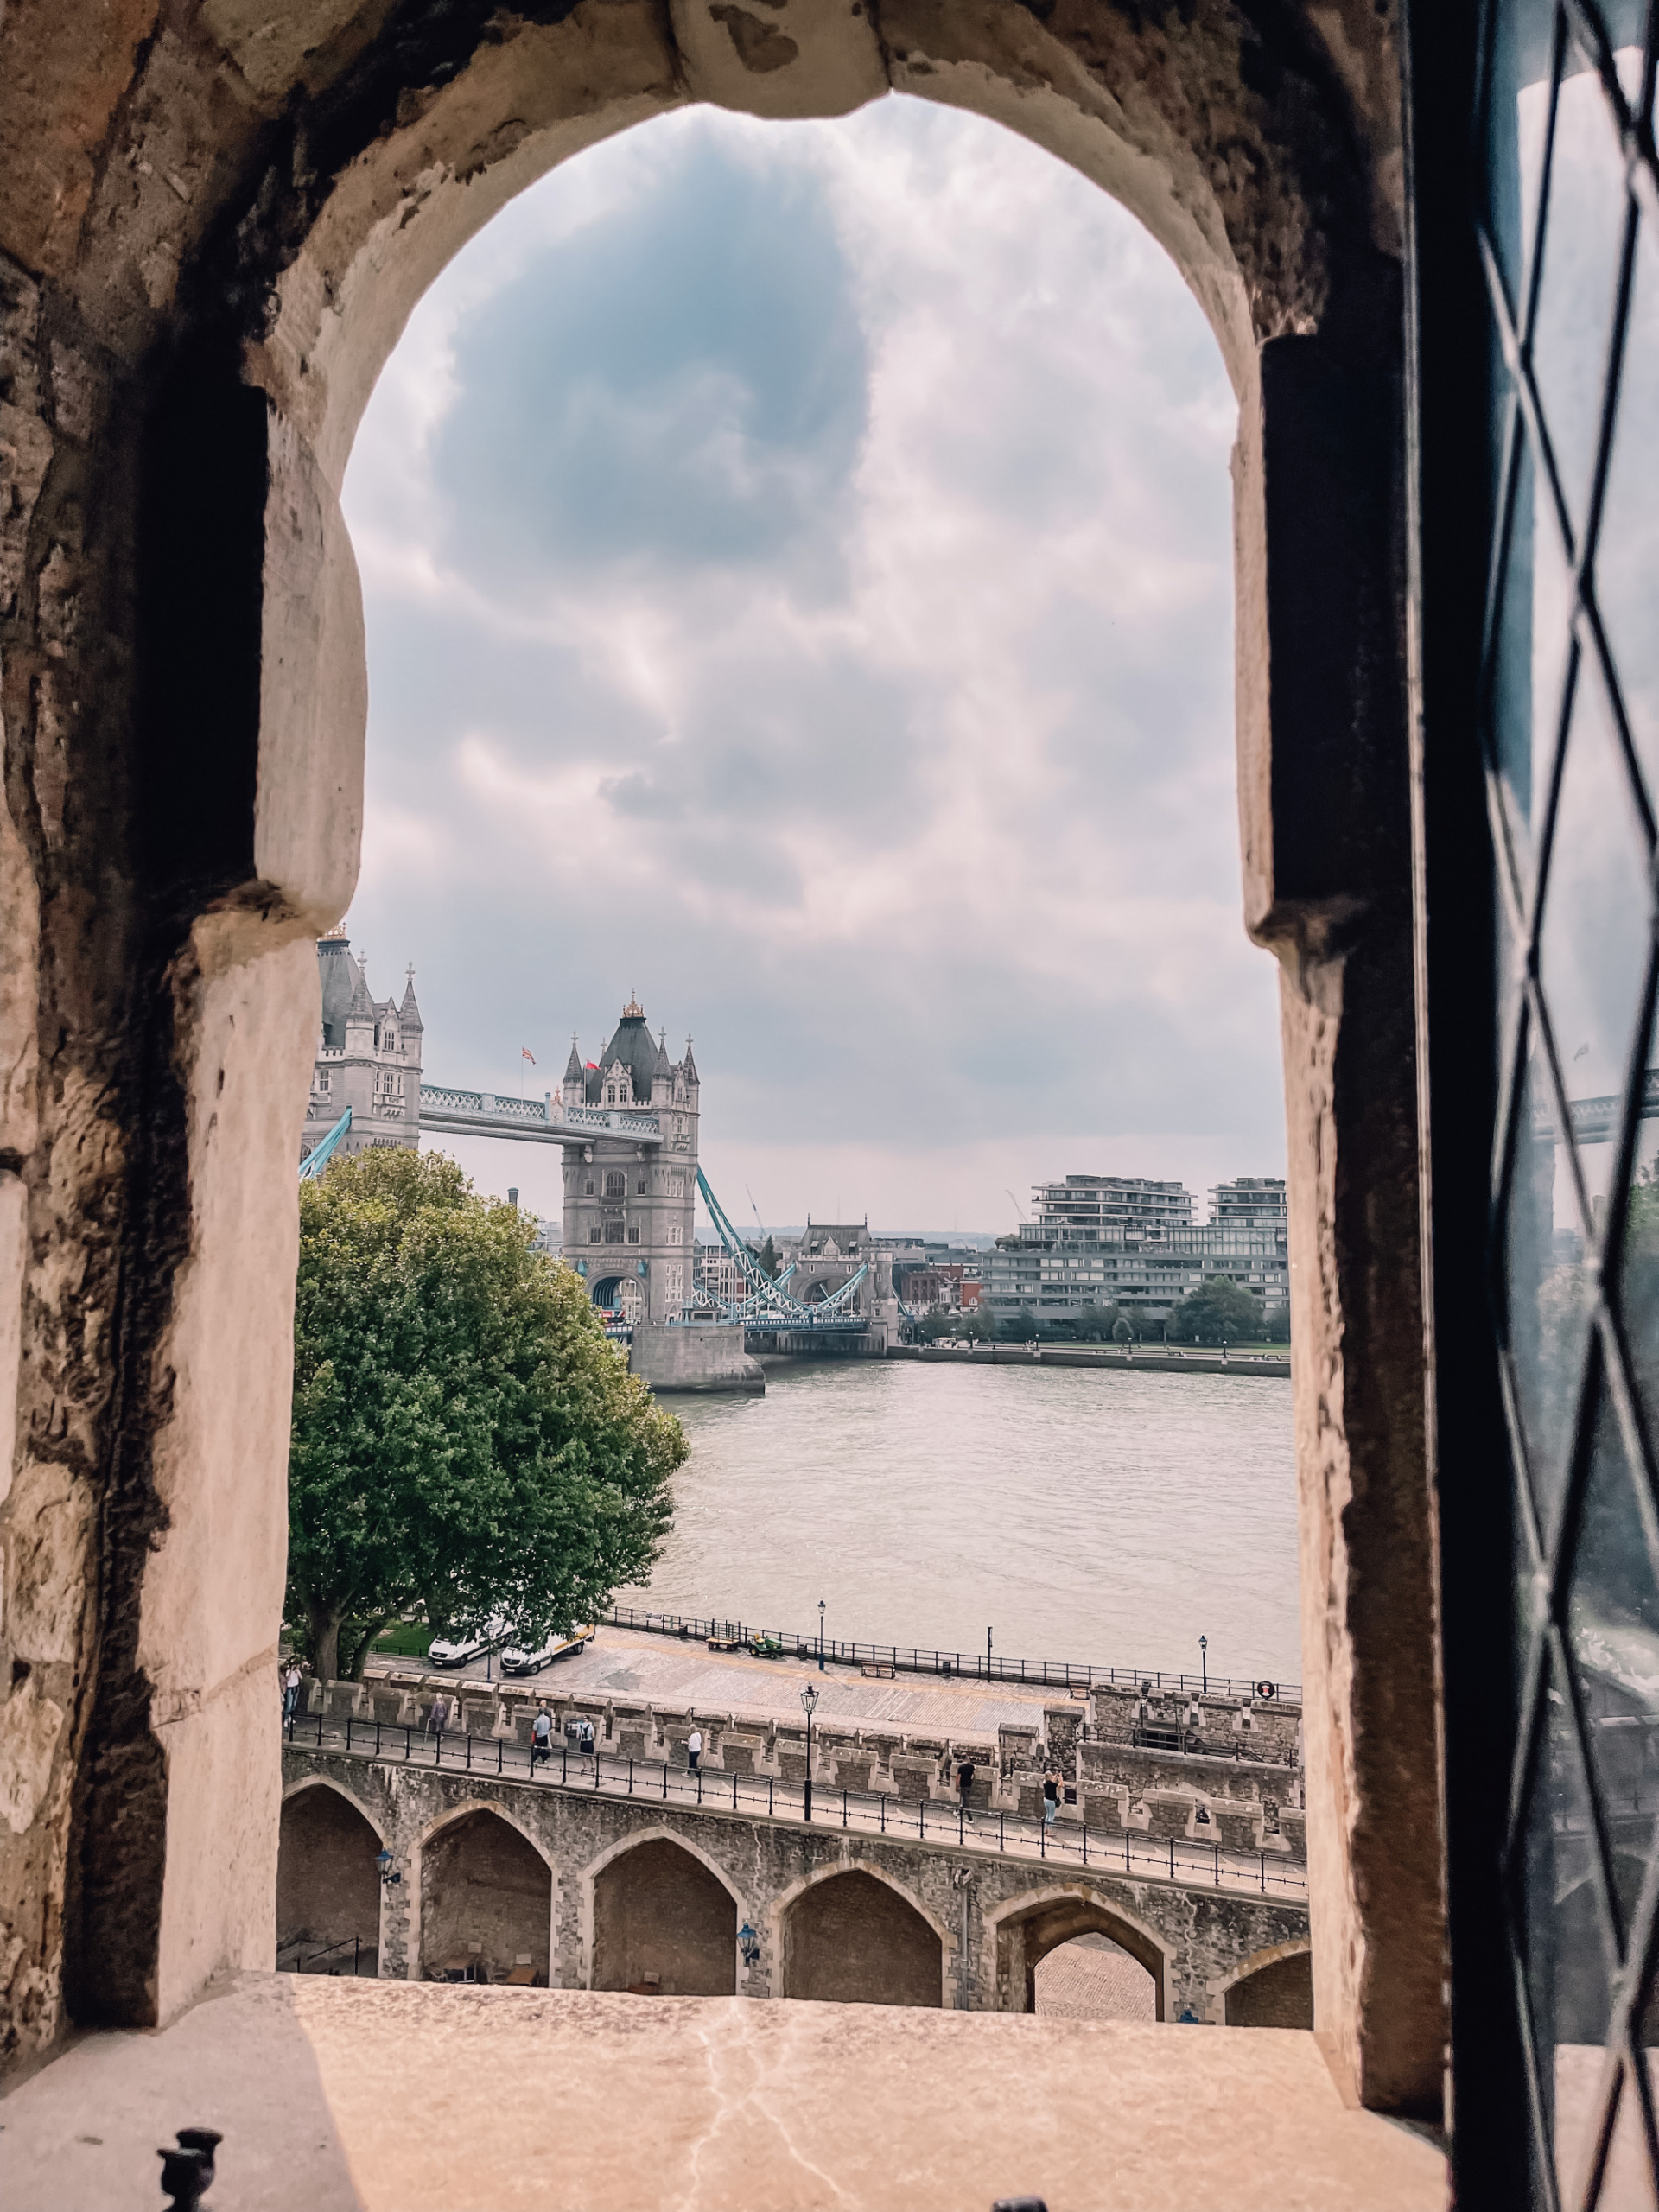 where to travel from spain, travel from spain, travel from madrid, erin bsubee, where to travel, weekend trips from spain, weekend trips from madrid, london, england, tower of london